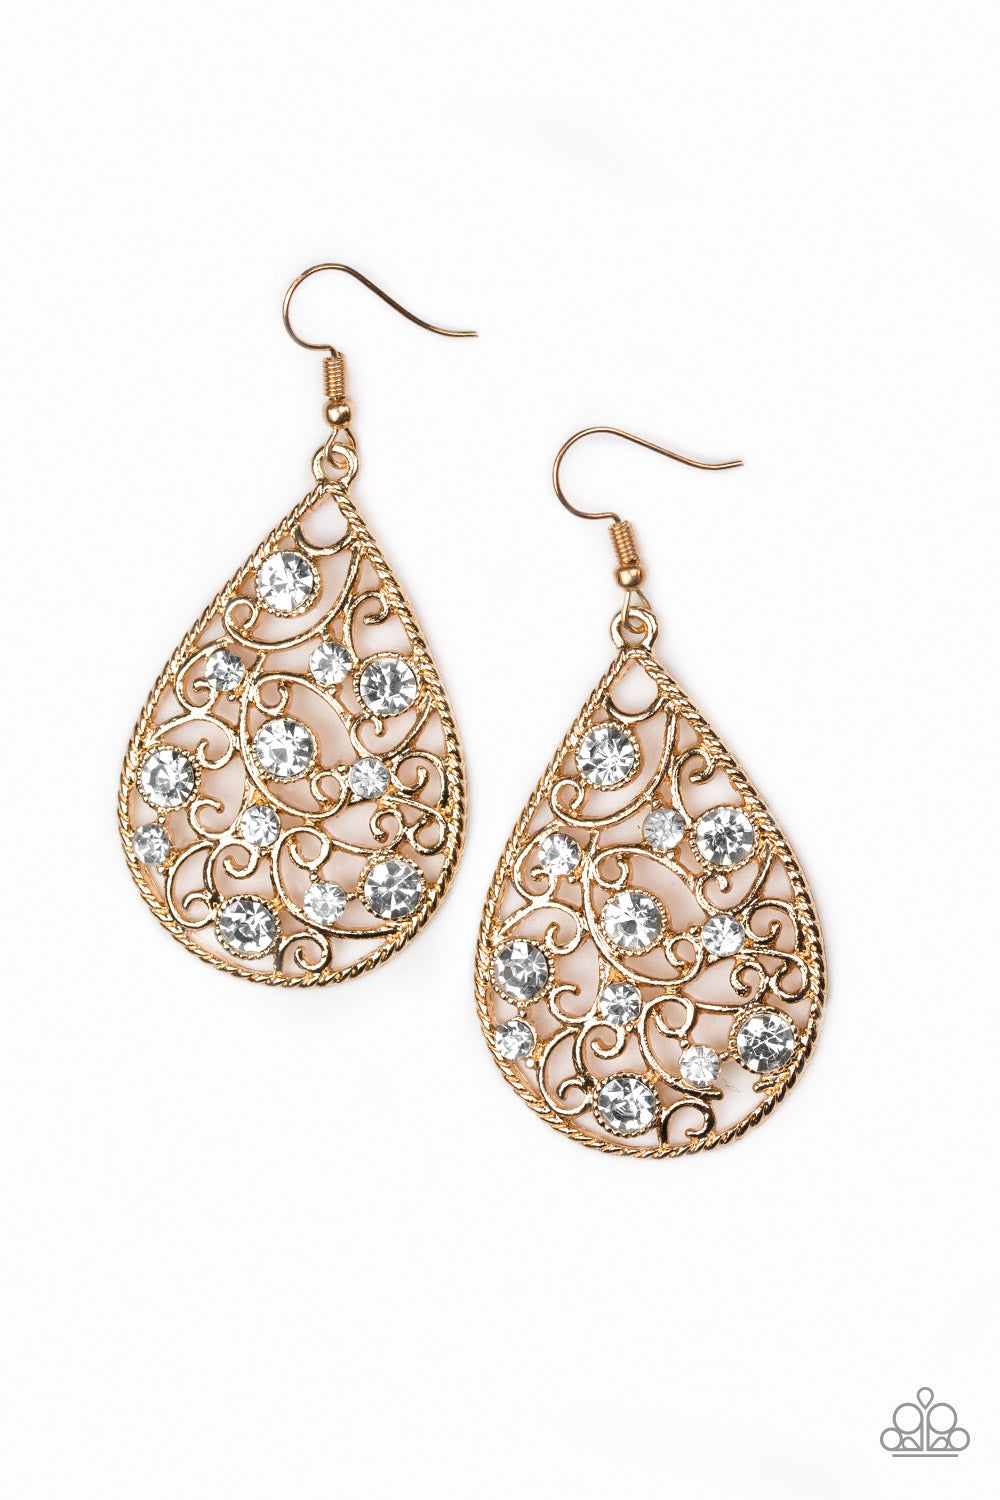 Paparazzi Accessories - Paparazzi - Certainly Courtier Gold- White Rhinestone Earring - Earrings